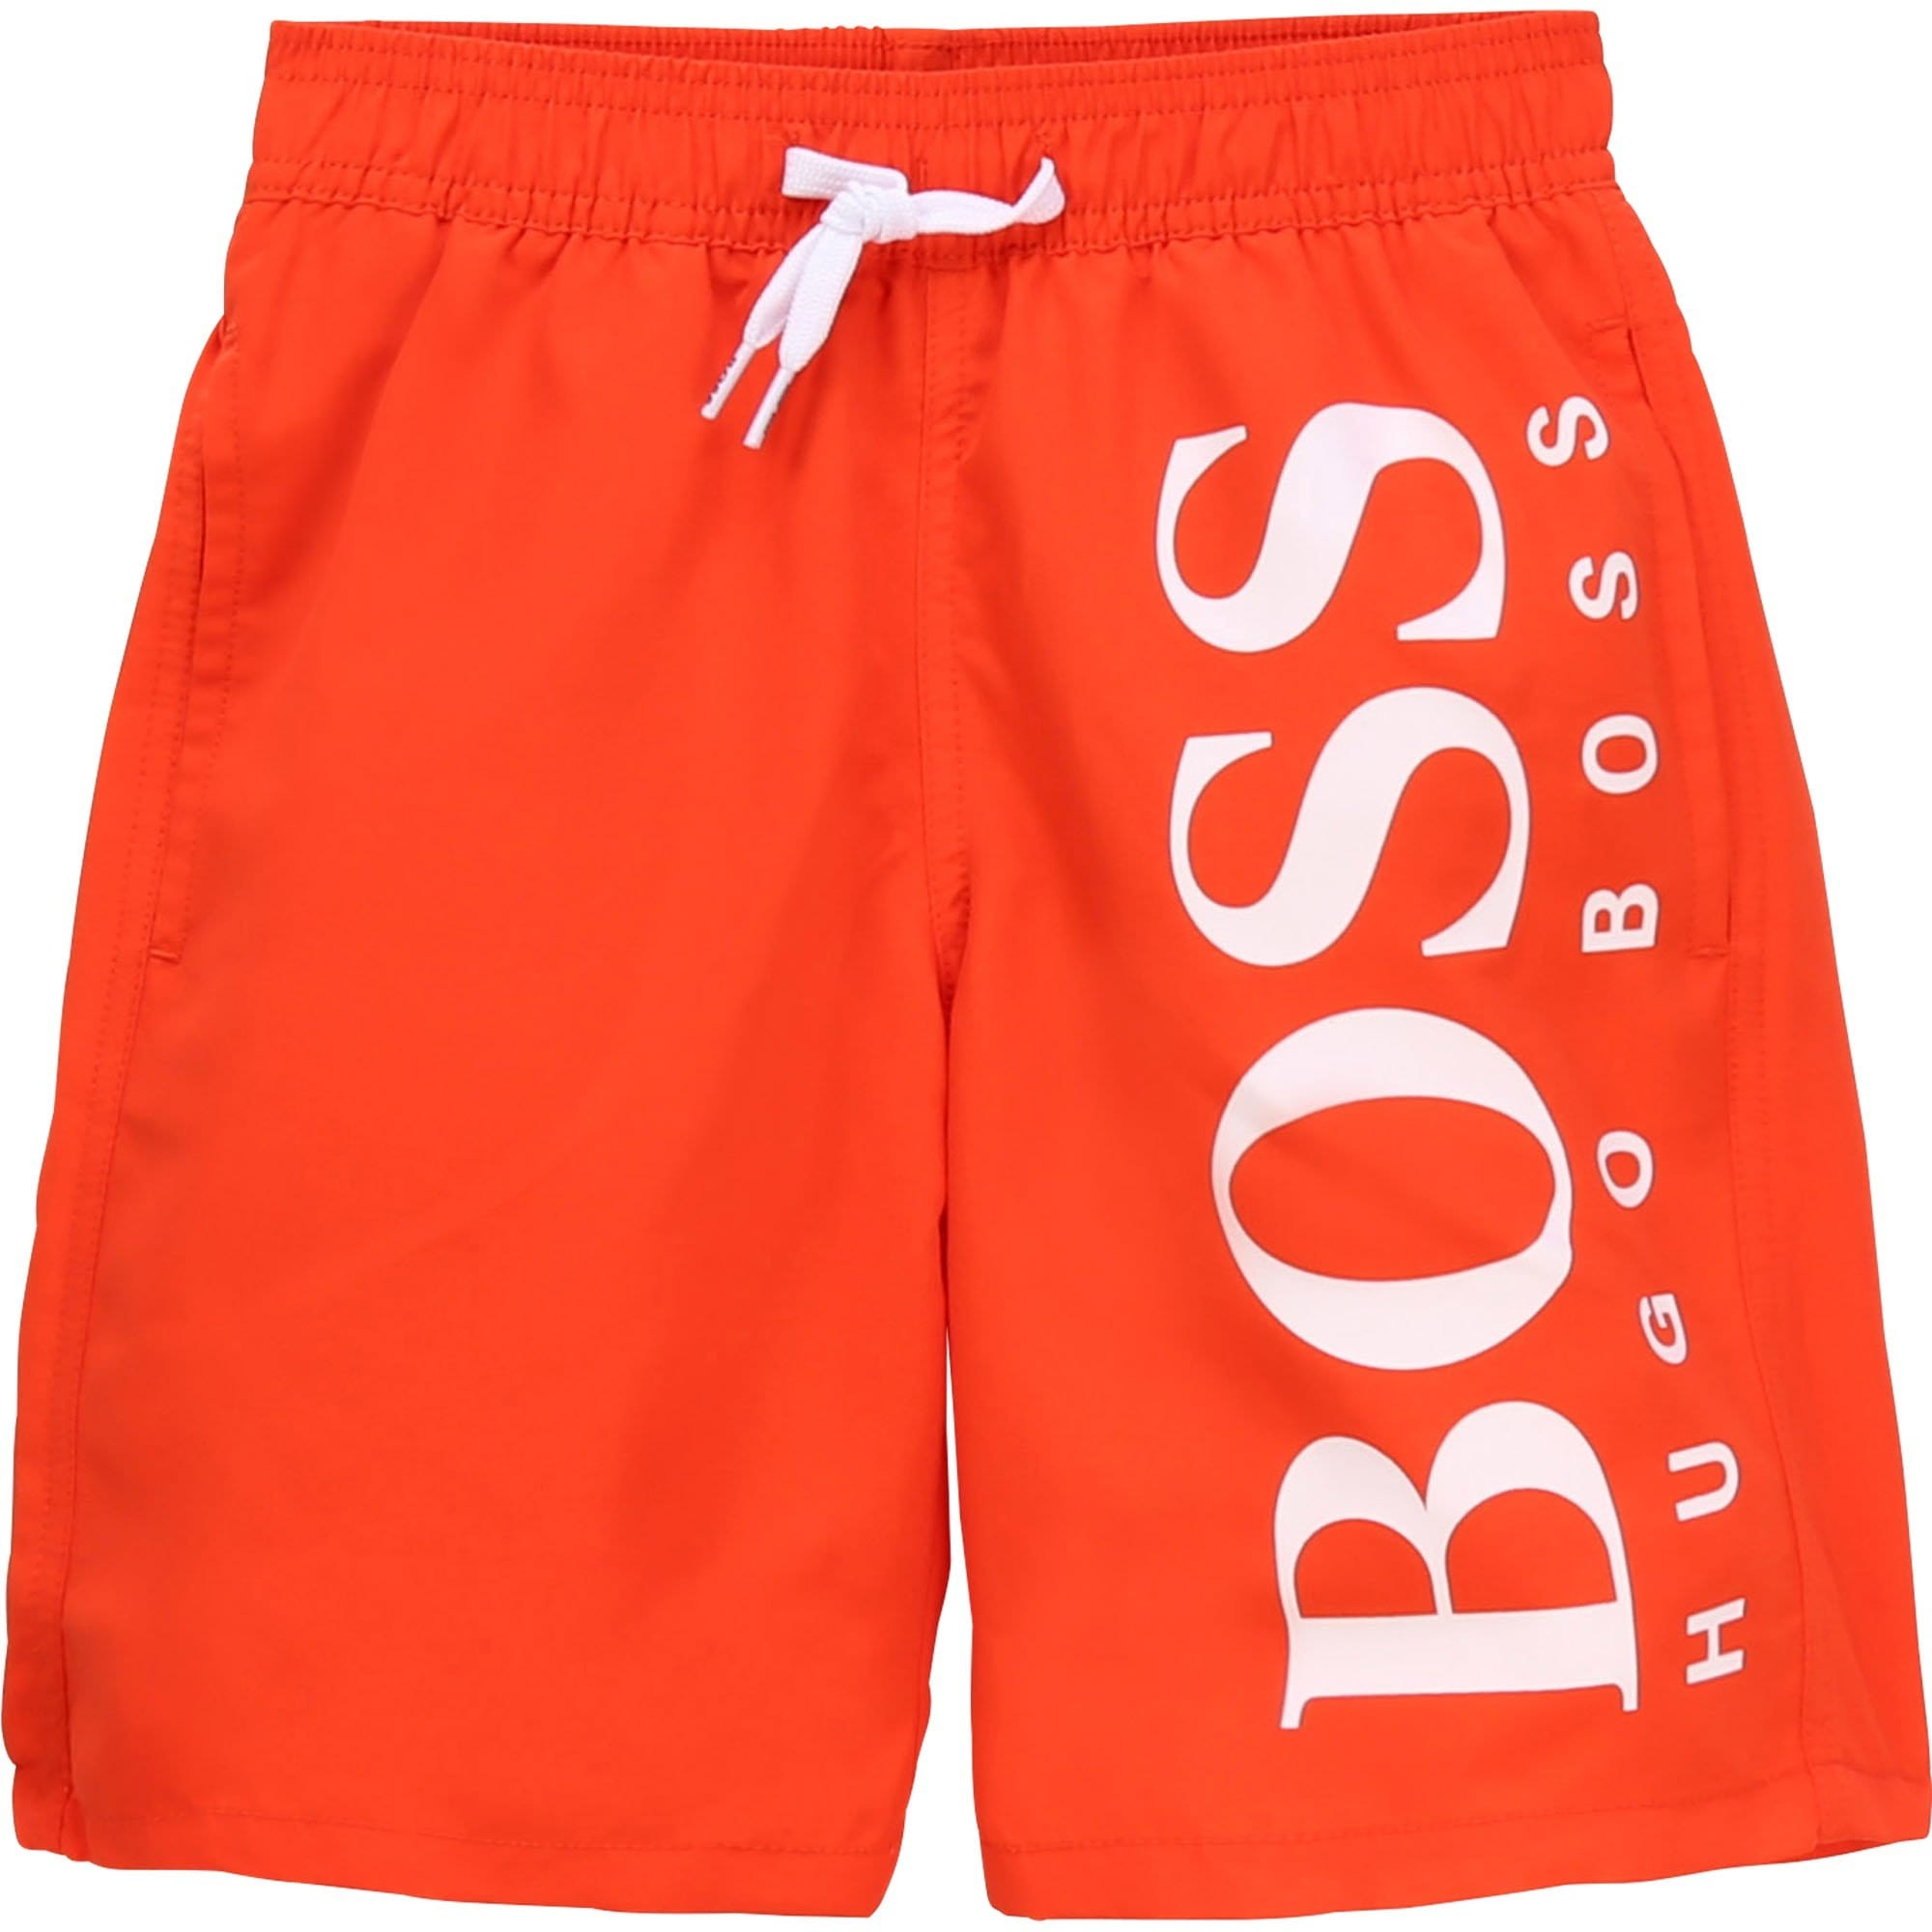 Hugo Boss Board Shorts - Red J24650/41C